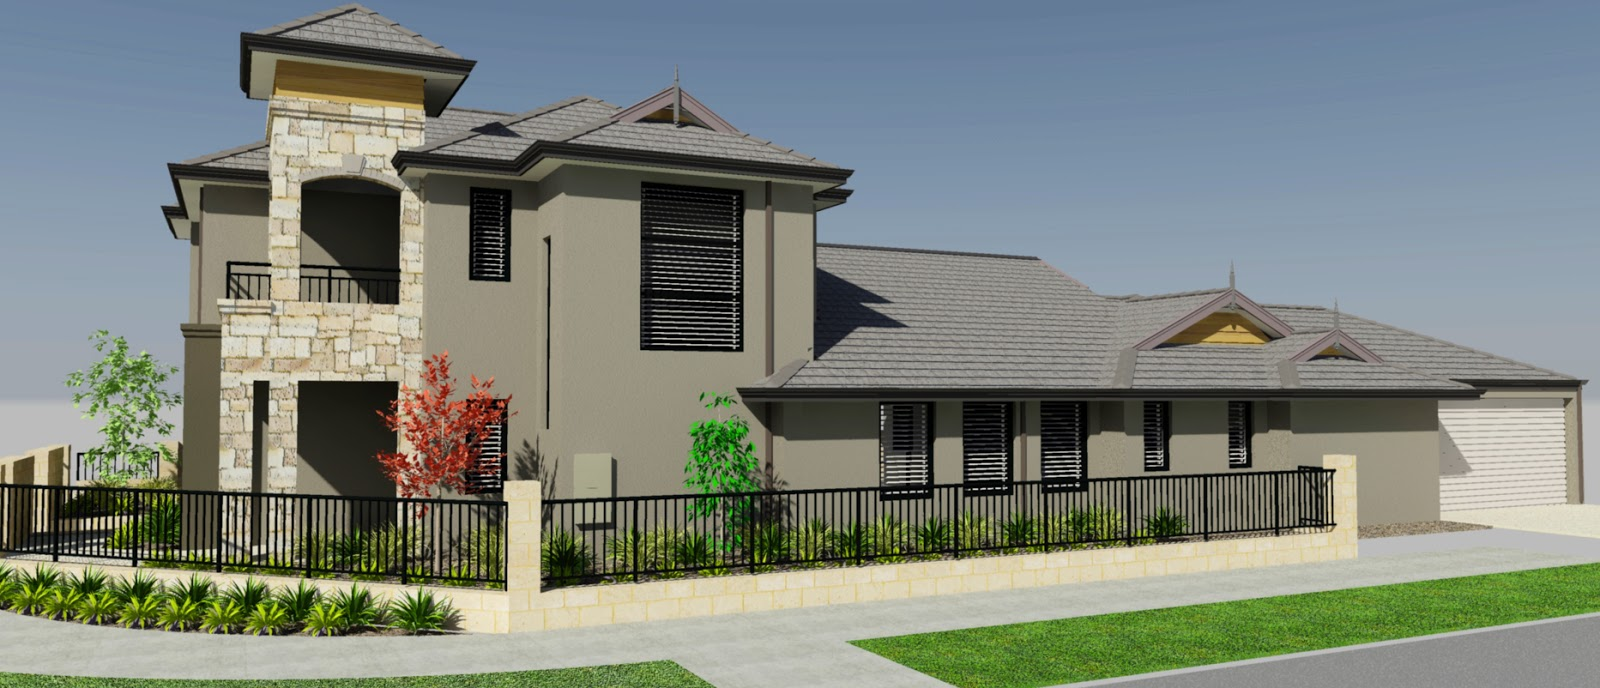 3 Story House Designs Australia House Design Ideas